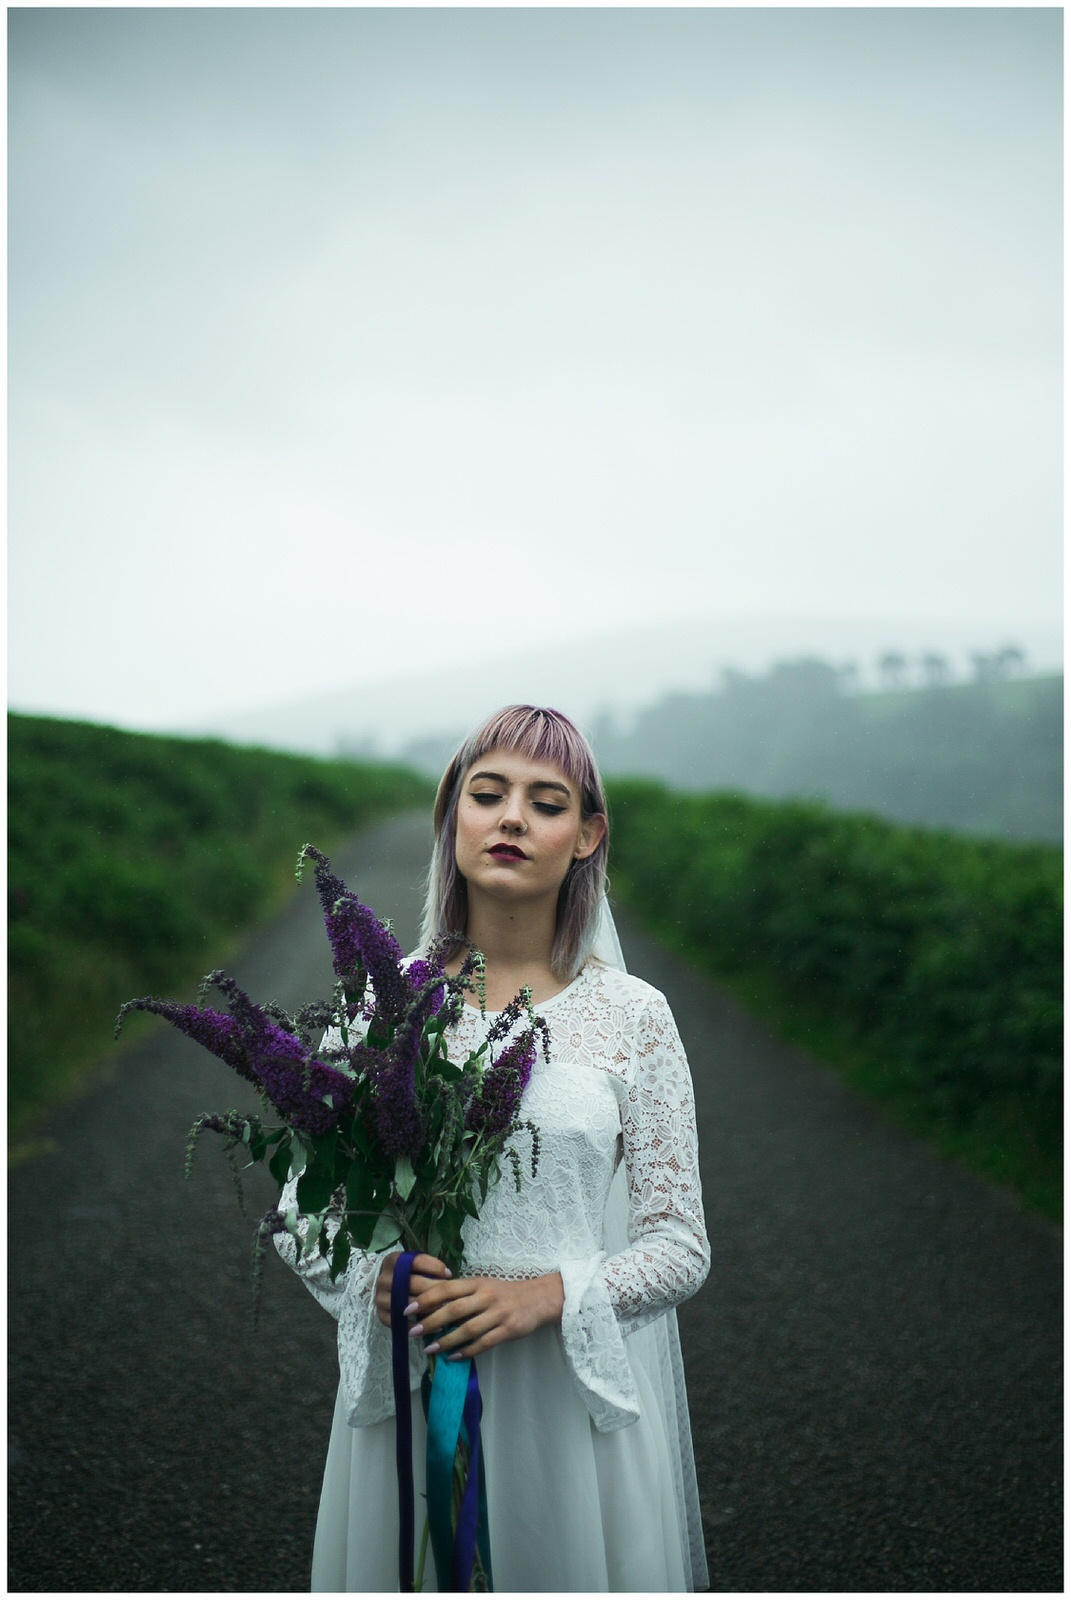 Rainy wedding portrait in the stunning Wicklow Mountains - Wild Things Wed Photography